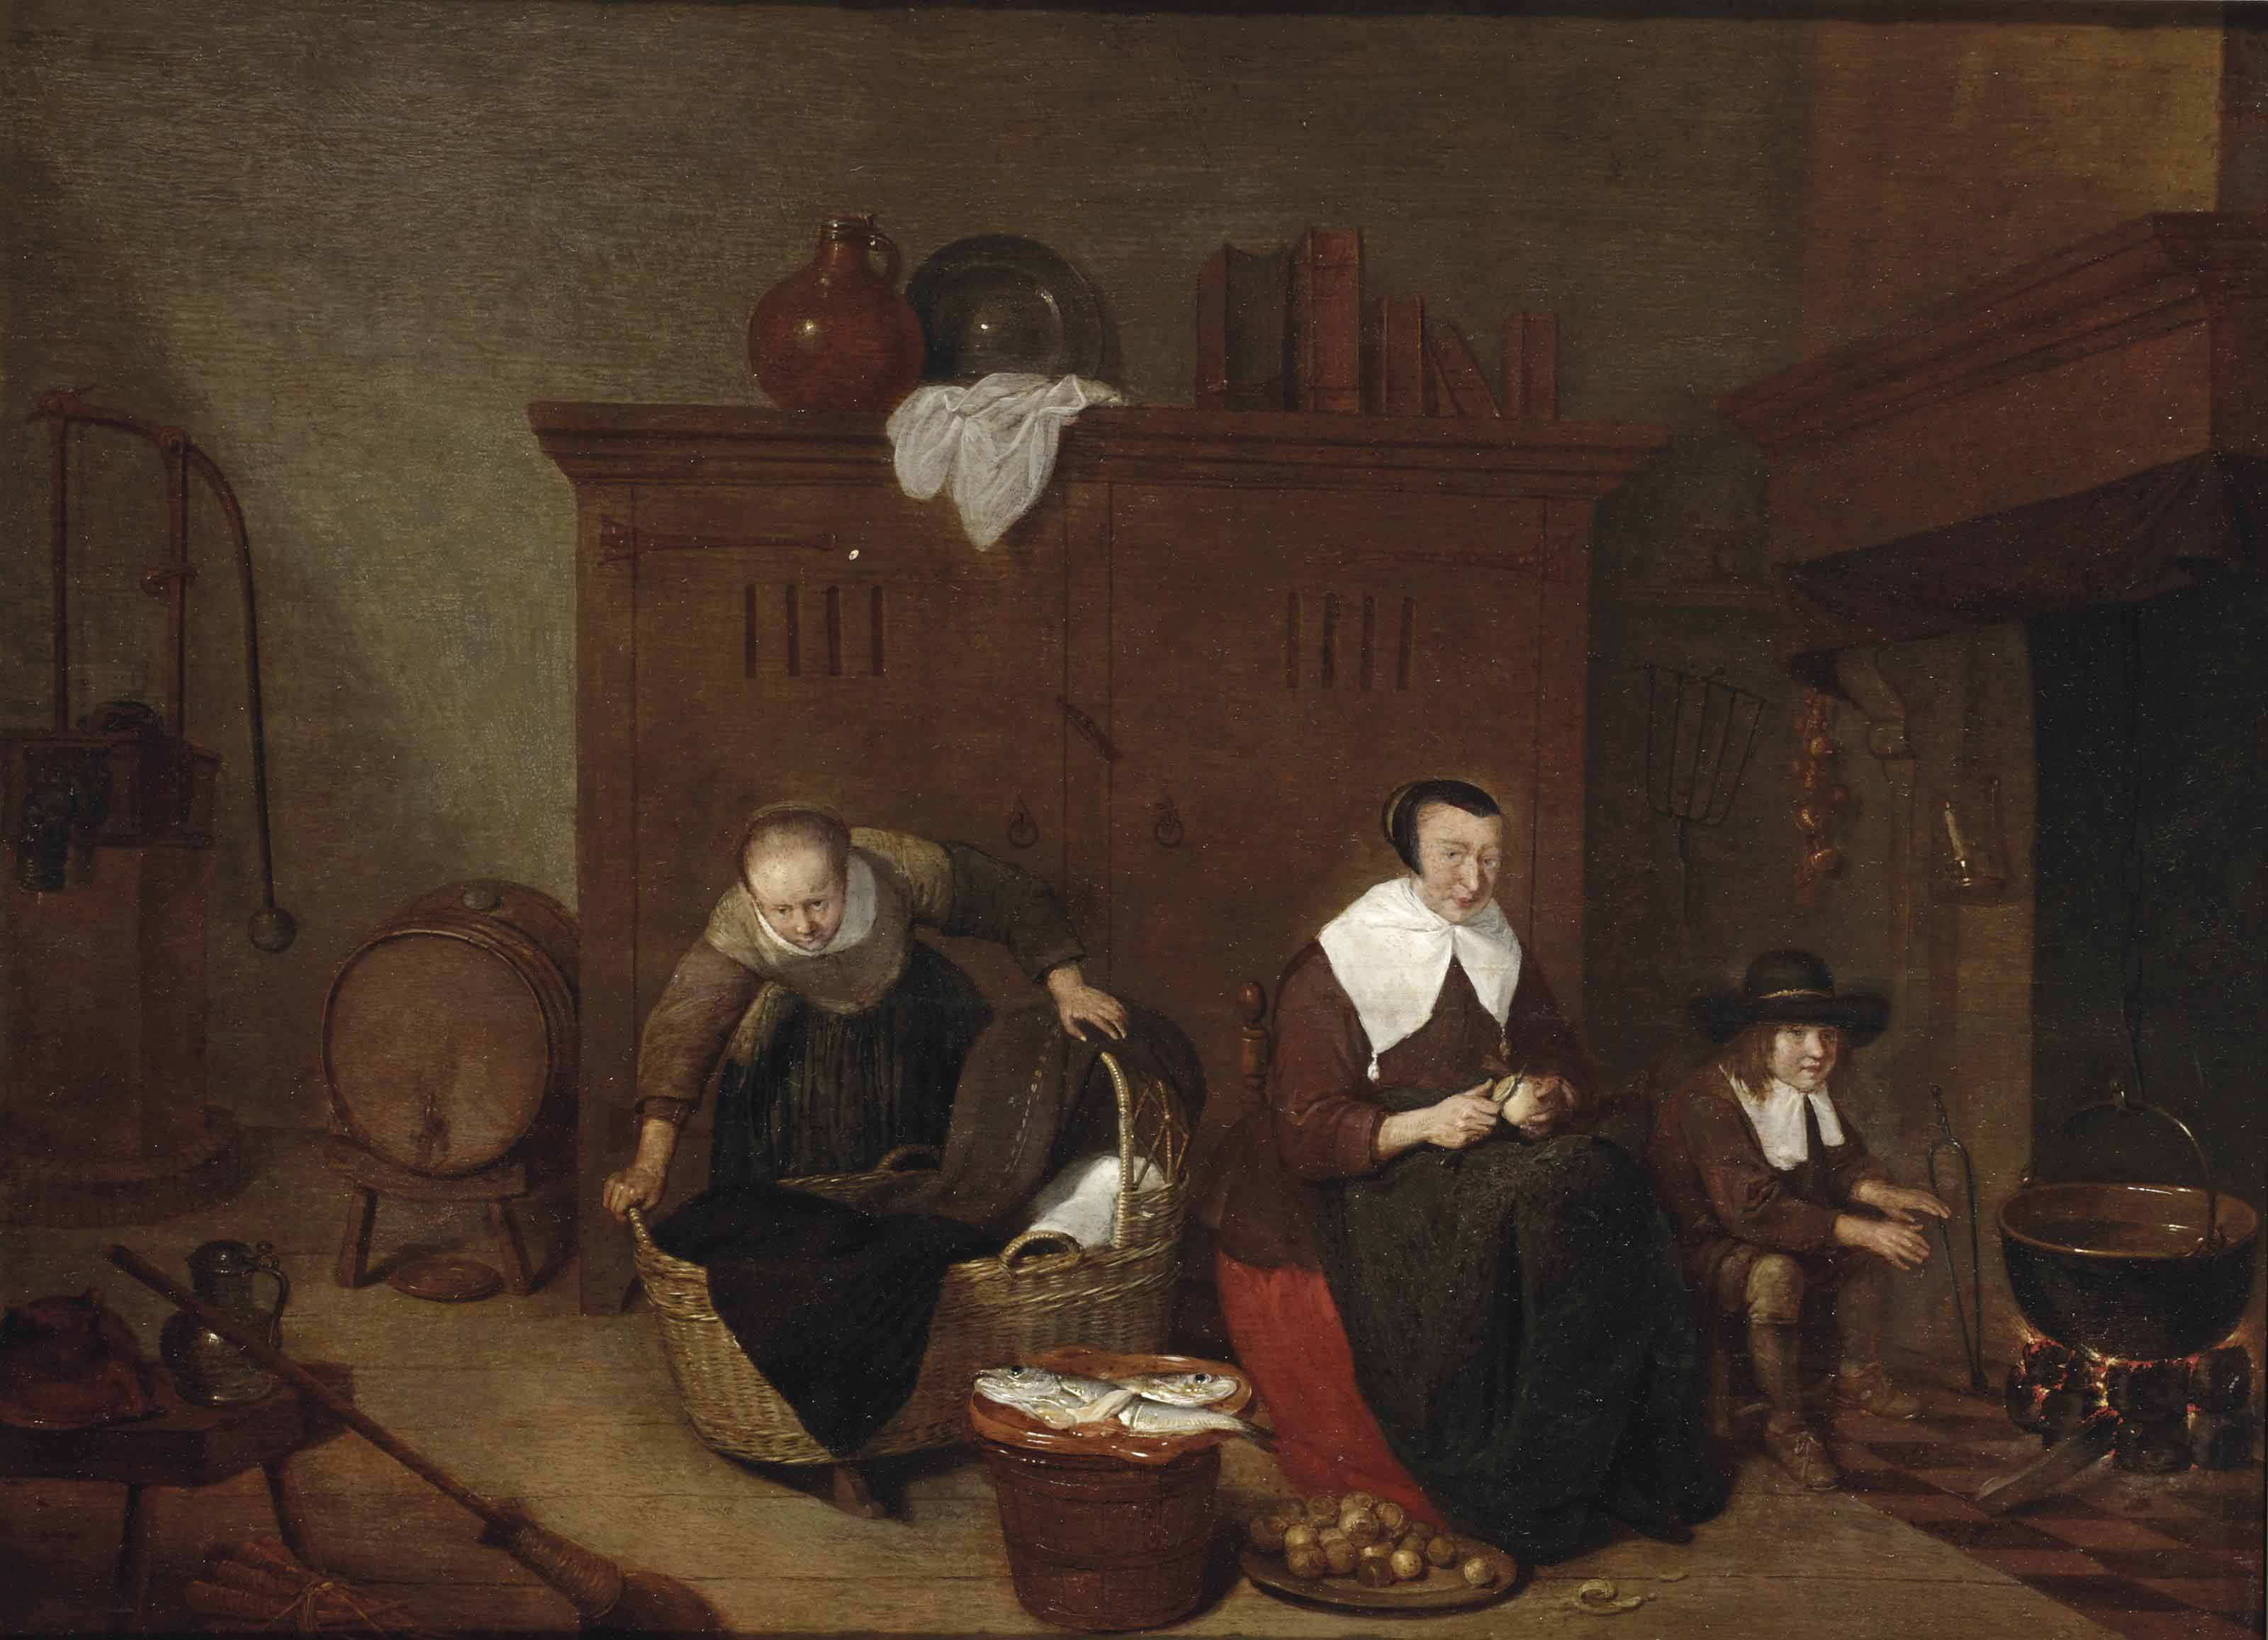 A kitchen interior with a maid peeling turnips, a woman tending to a baby and a boy warming his hands by the fire